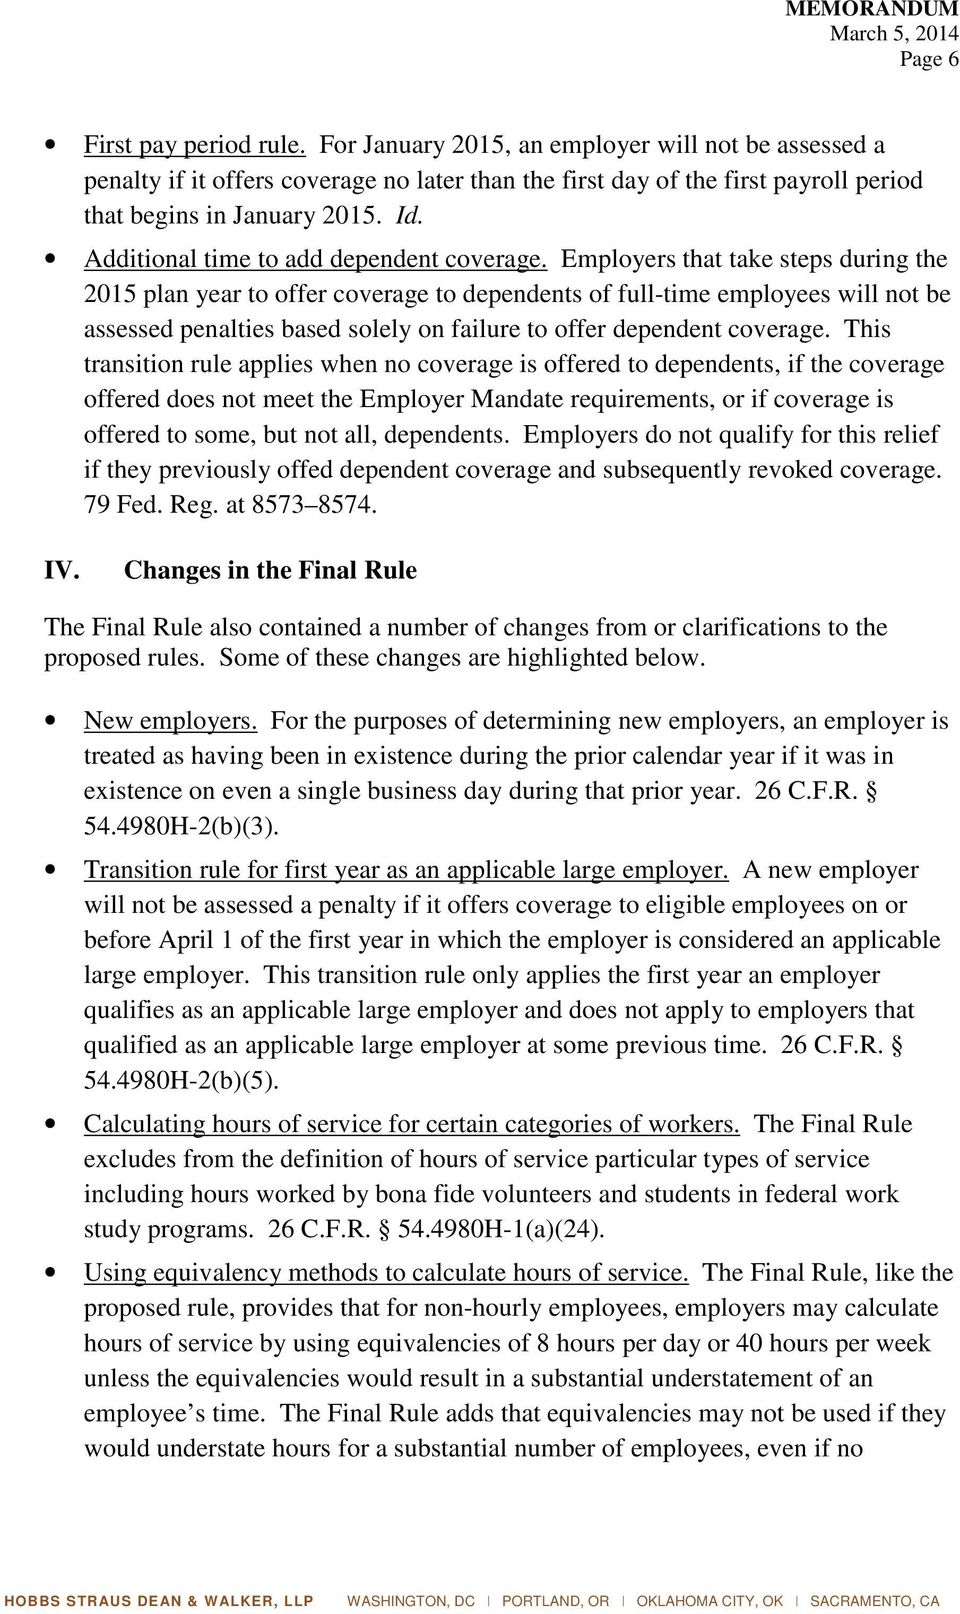 Employers that take steps during the 2015 plan year to offer coverage to dependents of full-time employees will not be assessed penalties based solely on failure to offer dependent coverage.